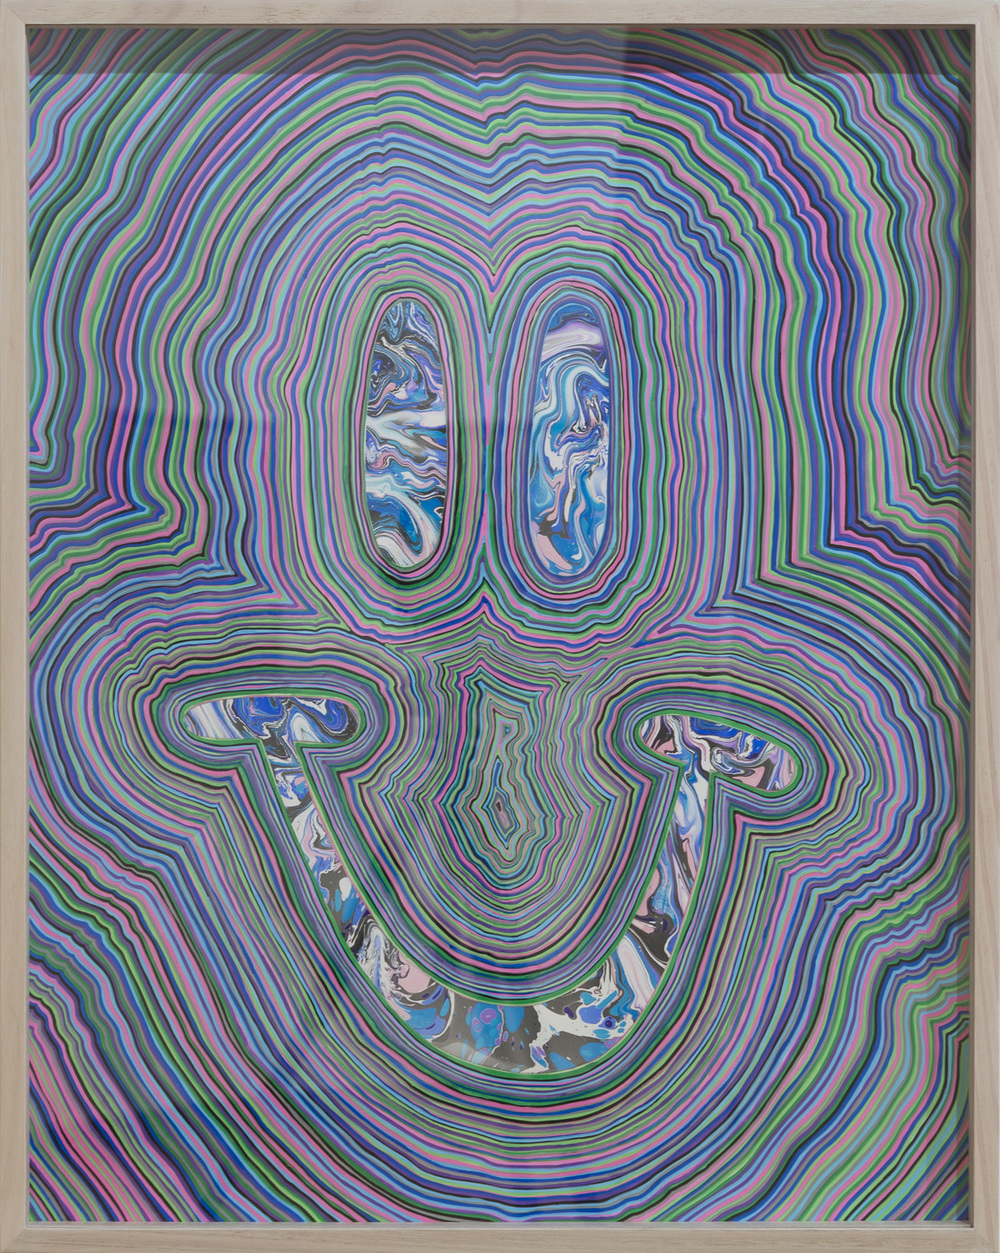 TGIF 1 (2016) marbled paper and acrylic paint pen on paper, 24 x 18 inches